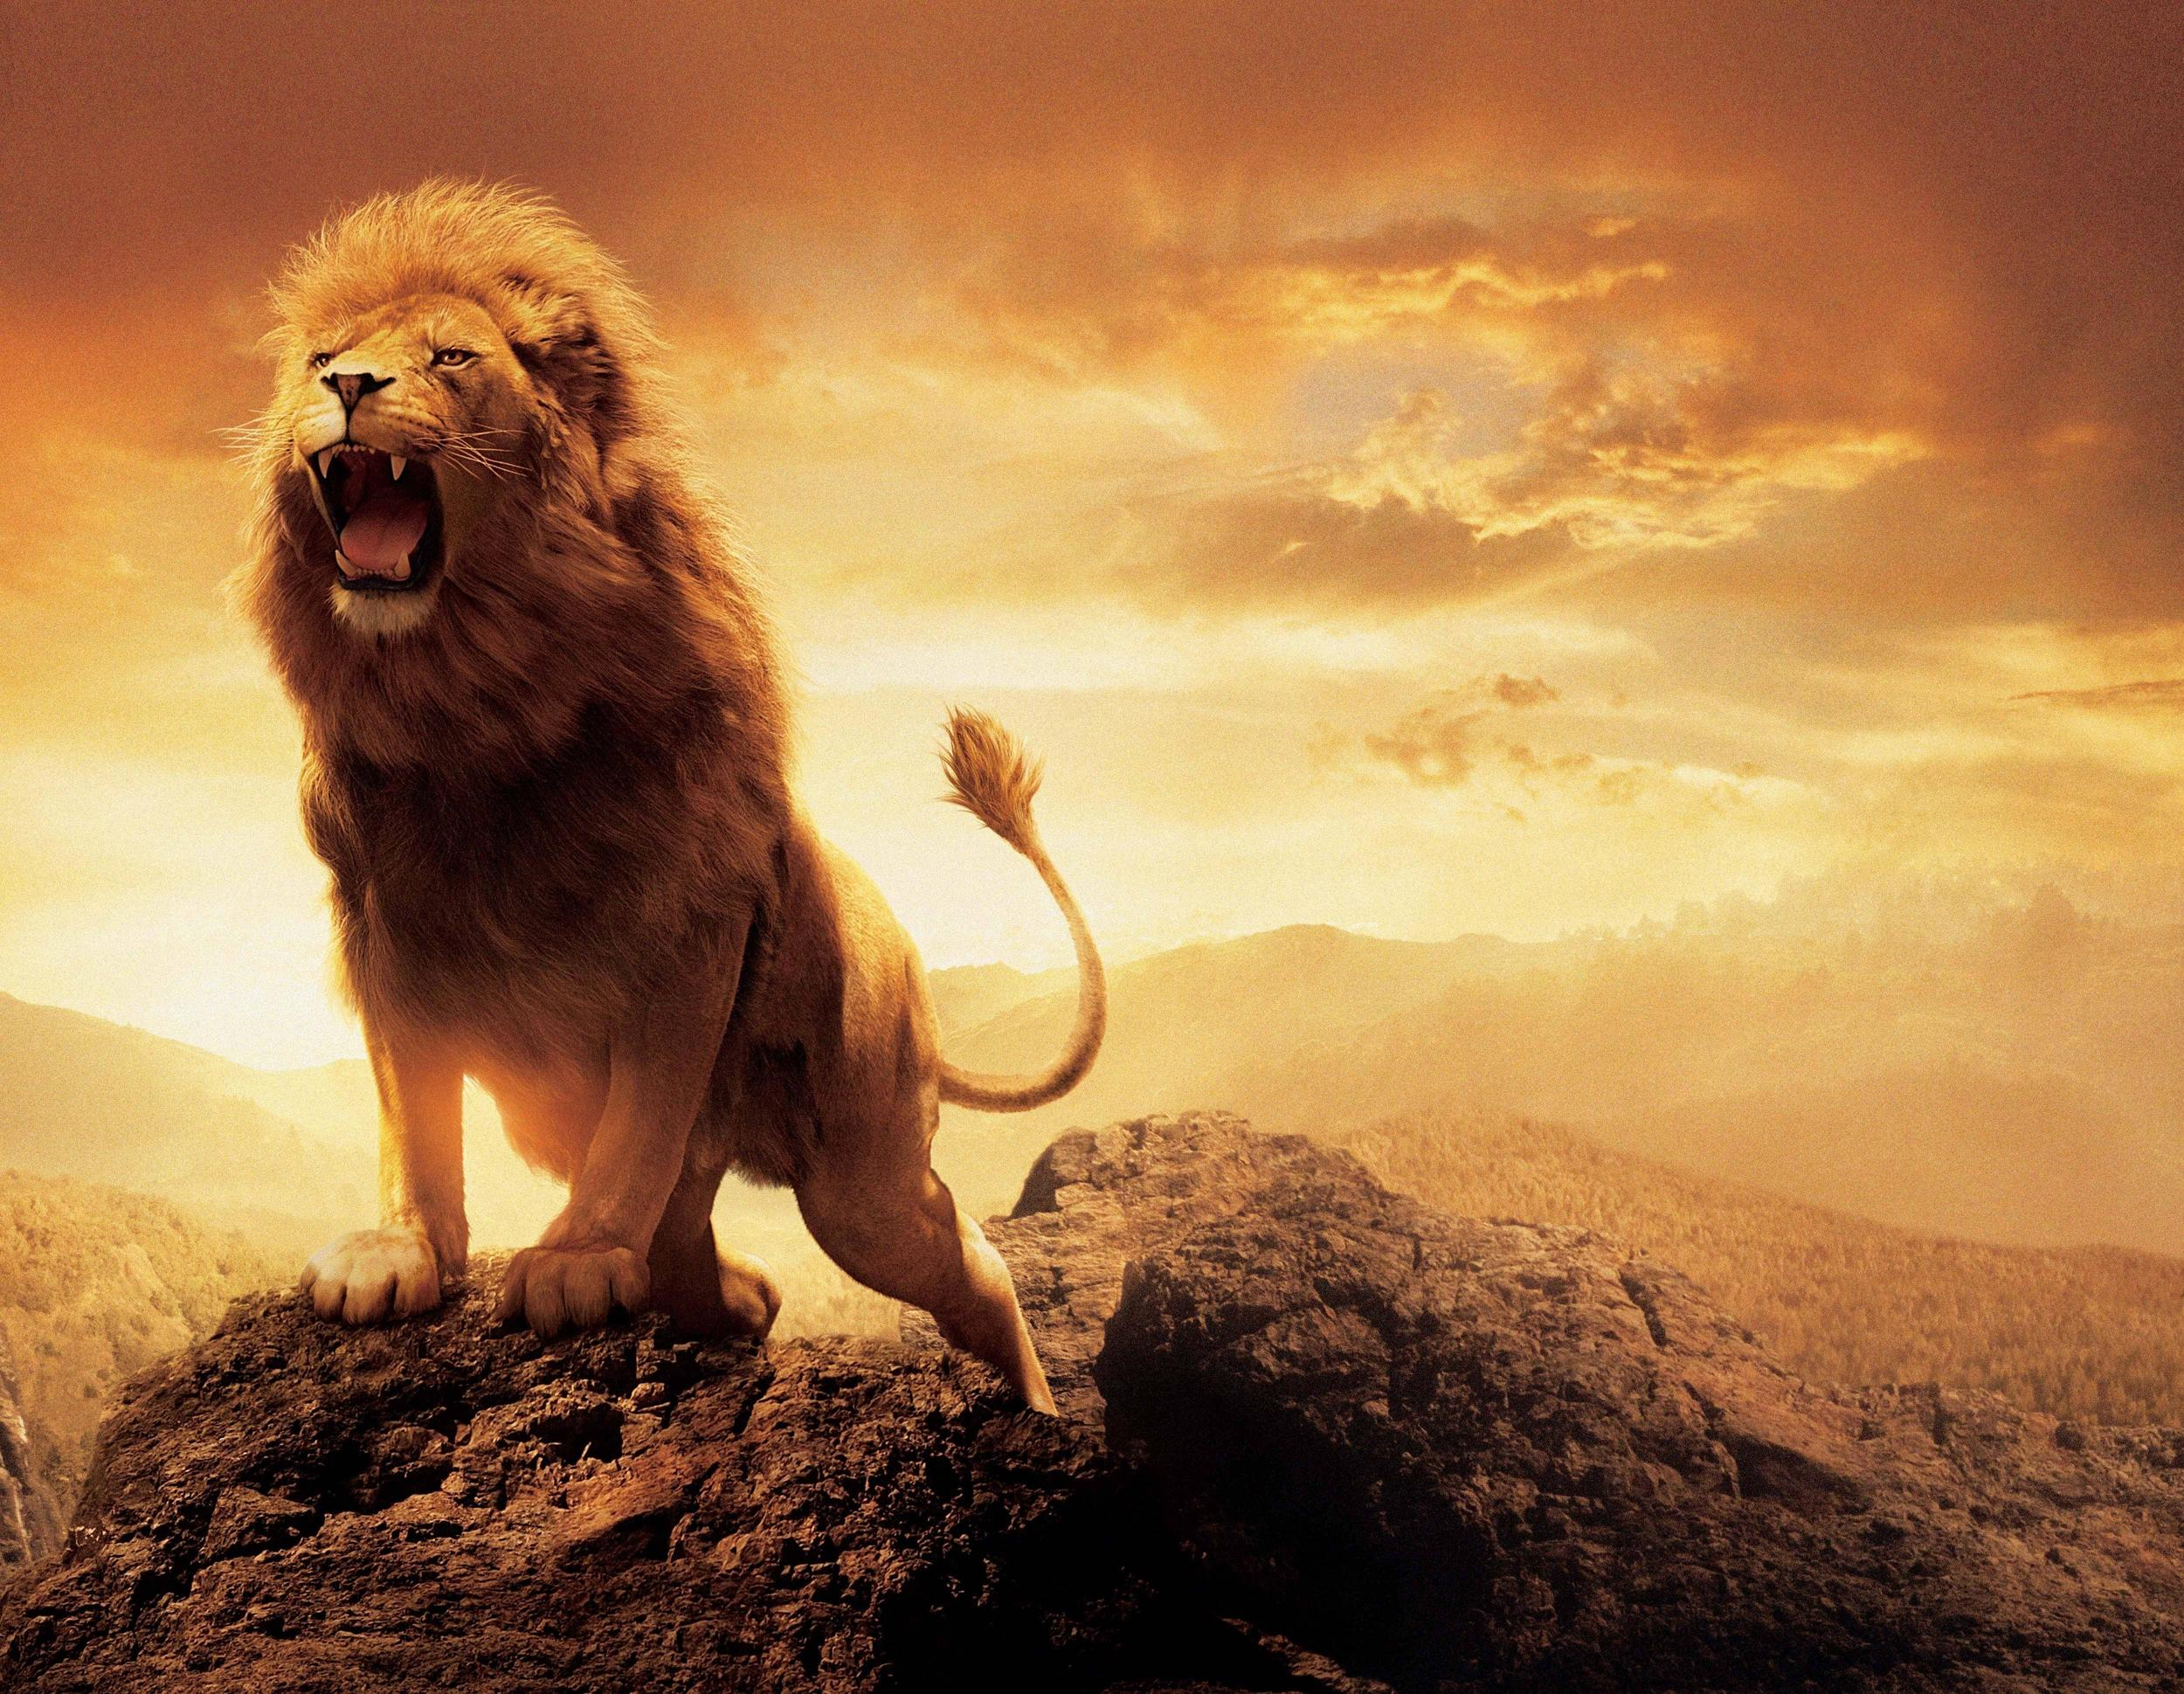 Epic Lion Wallpapers Top Free Epic Lion Backgrounds